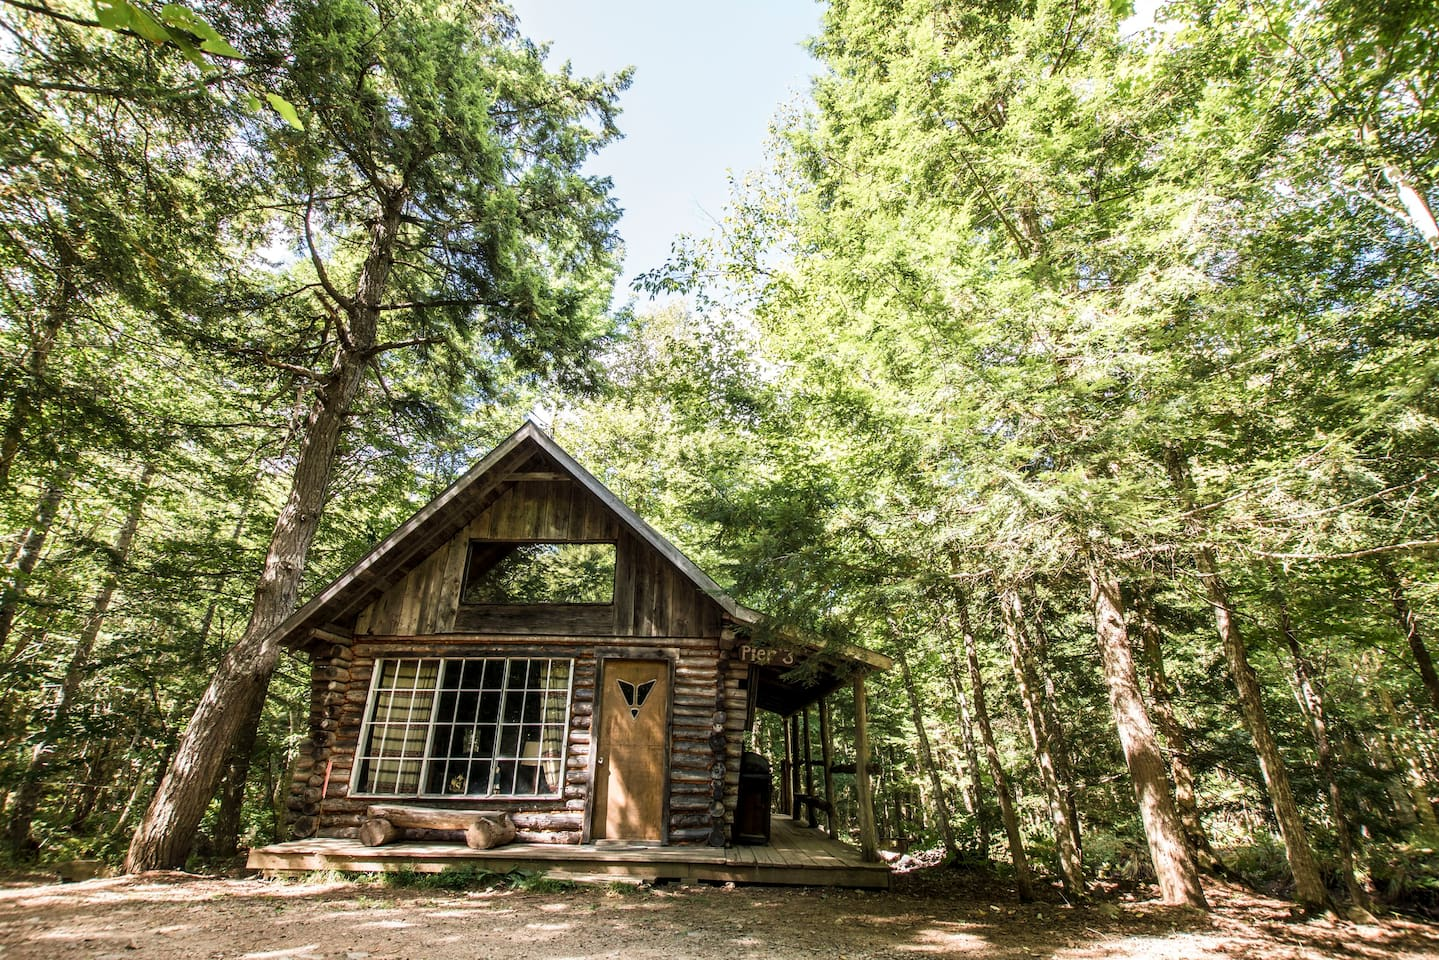 Pier 3 is a Cozy and inviting Cabin.  It's Nautical Theme is enhanced by a beautiful pond on one side and a creek on another. Hang out on either the covered or open decks and enjoy the forest setting.